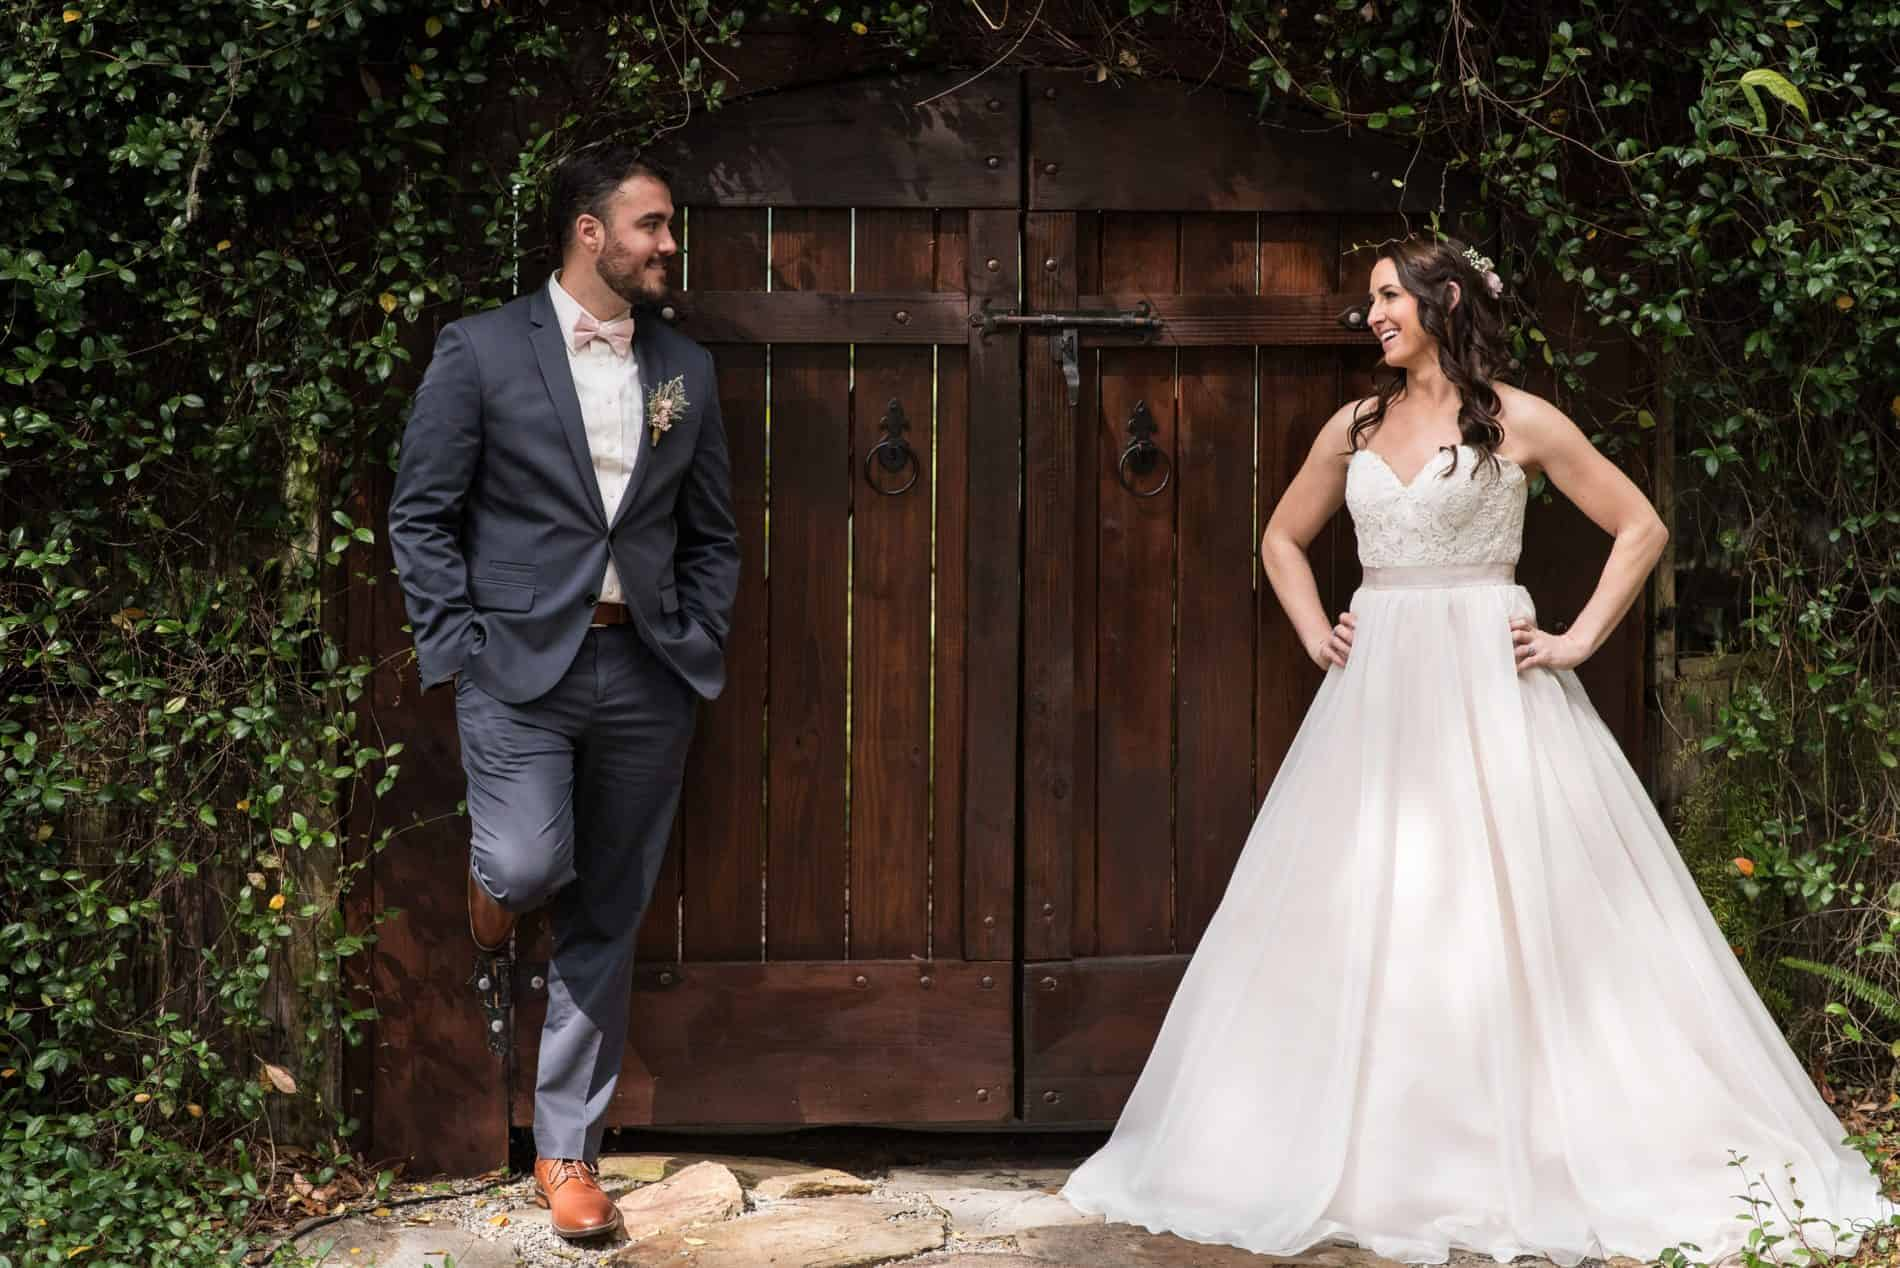 First Look Between Bride and Groom at Harmony Gardens